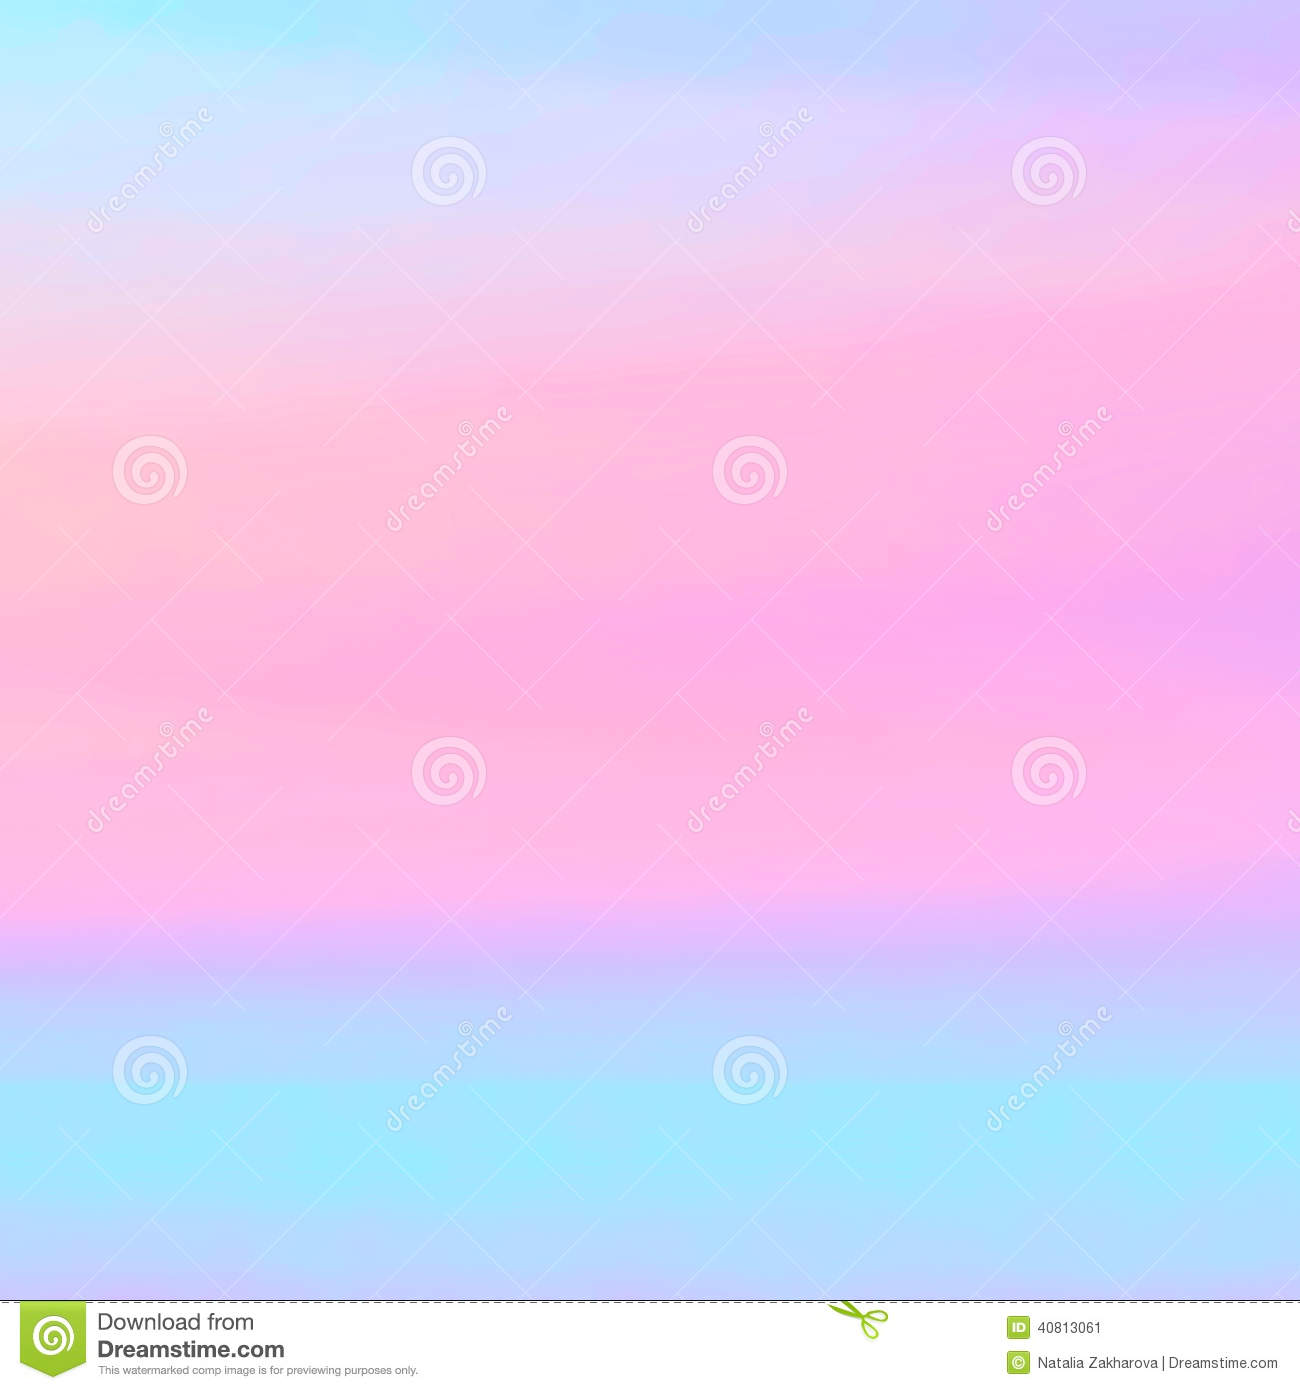 Wonderful Wallpaper Halloween Pastel - blurry-abstract-gradient-backgrounds-smooth-pastel-abstract-gr-background-pink-blue-colors-40813061  Best Photo Reference_523195.jpg